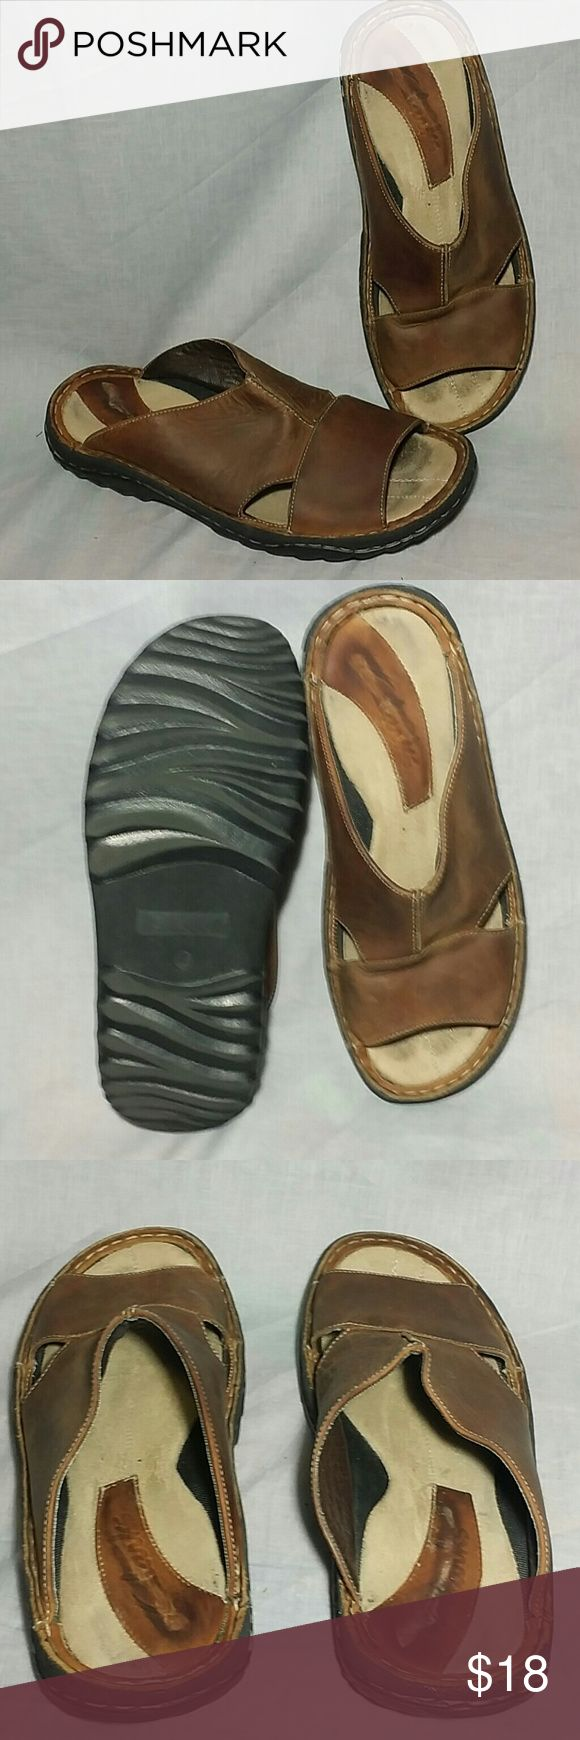 Men's Clarks Sandals Brown Size 9 M Slides Leather Item has a sign of being used see the pictures. Clarks  Shoes Sandals